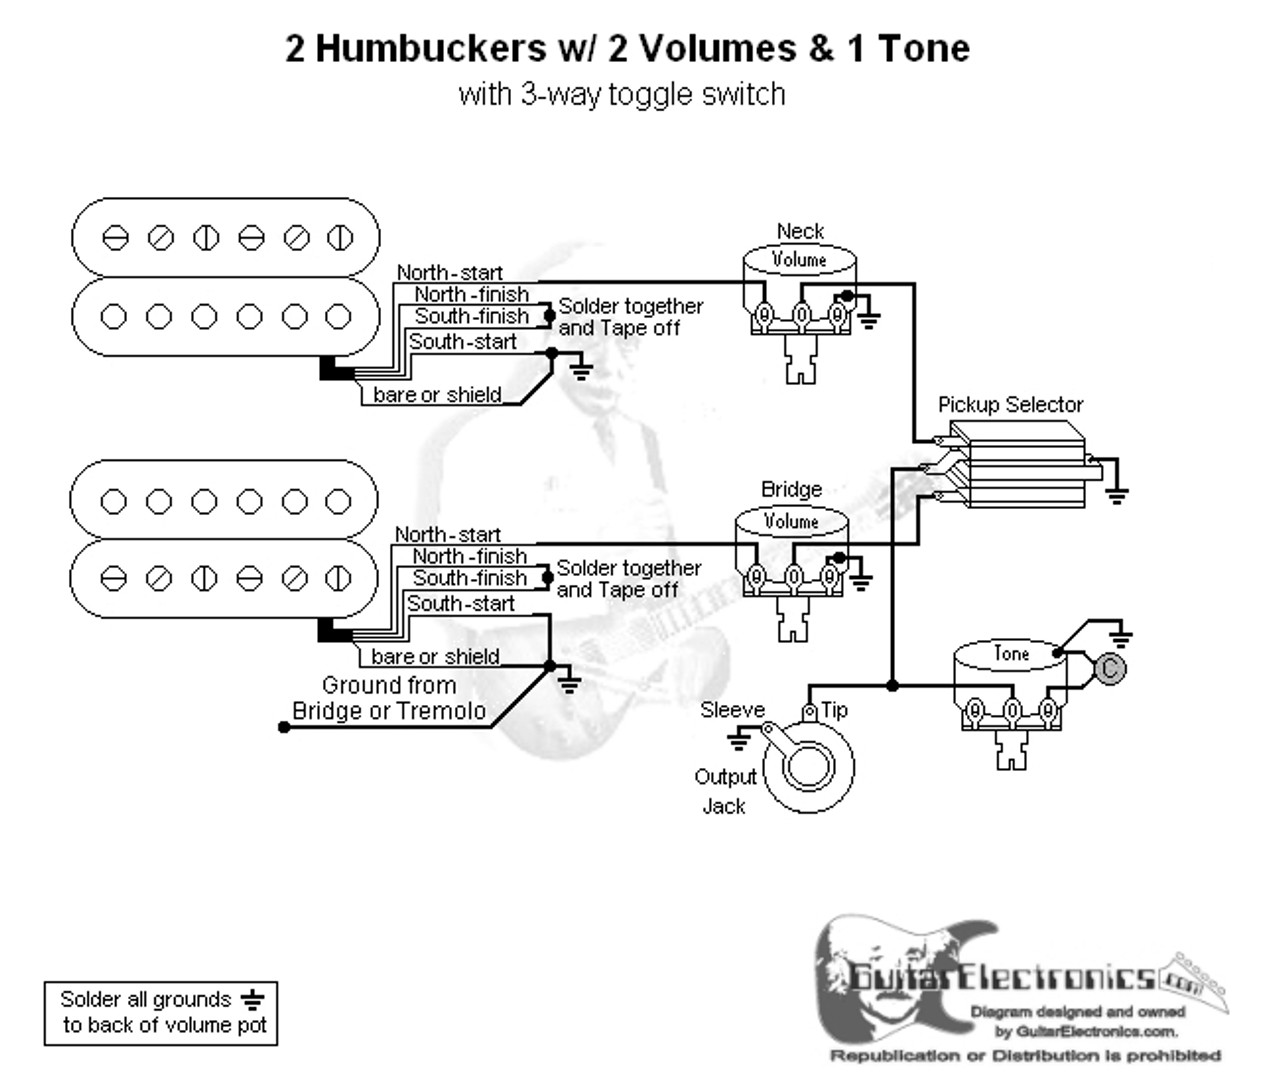 hight resolution of wiring diagrams for 2 humbucker 2 volume 1 tone wiring diagram toolbox single pickup guitar wiring diagram 2 humbuckers 3 way toggle switch 2 volumes 1 tone